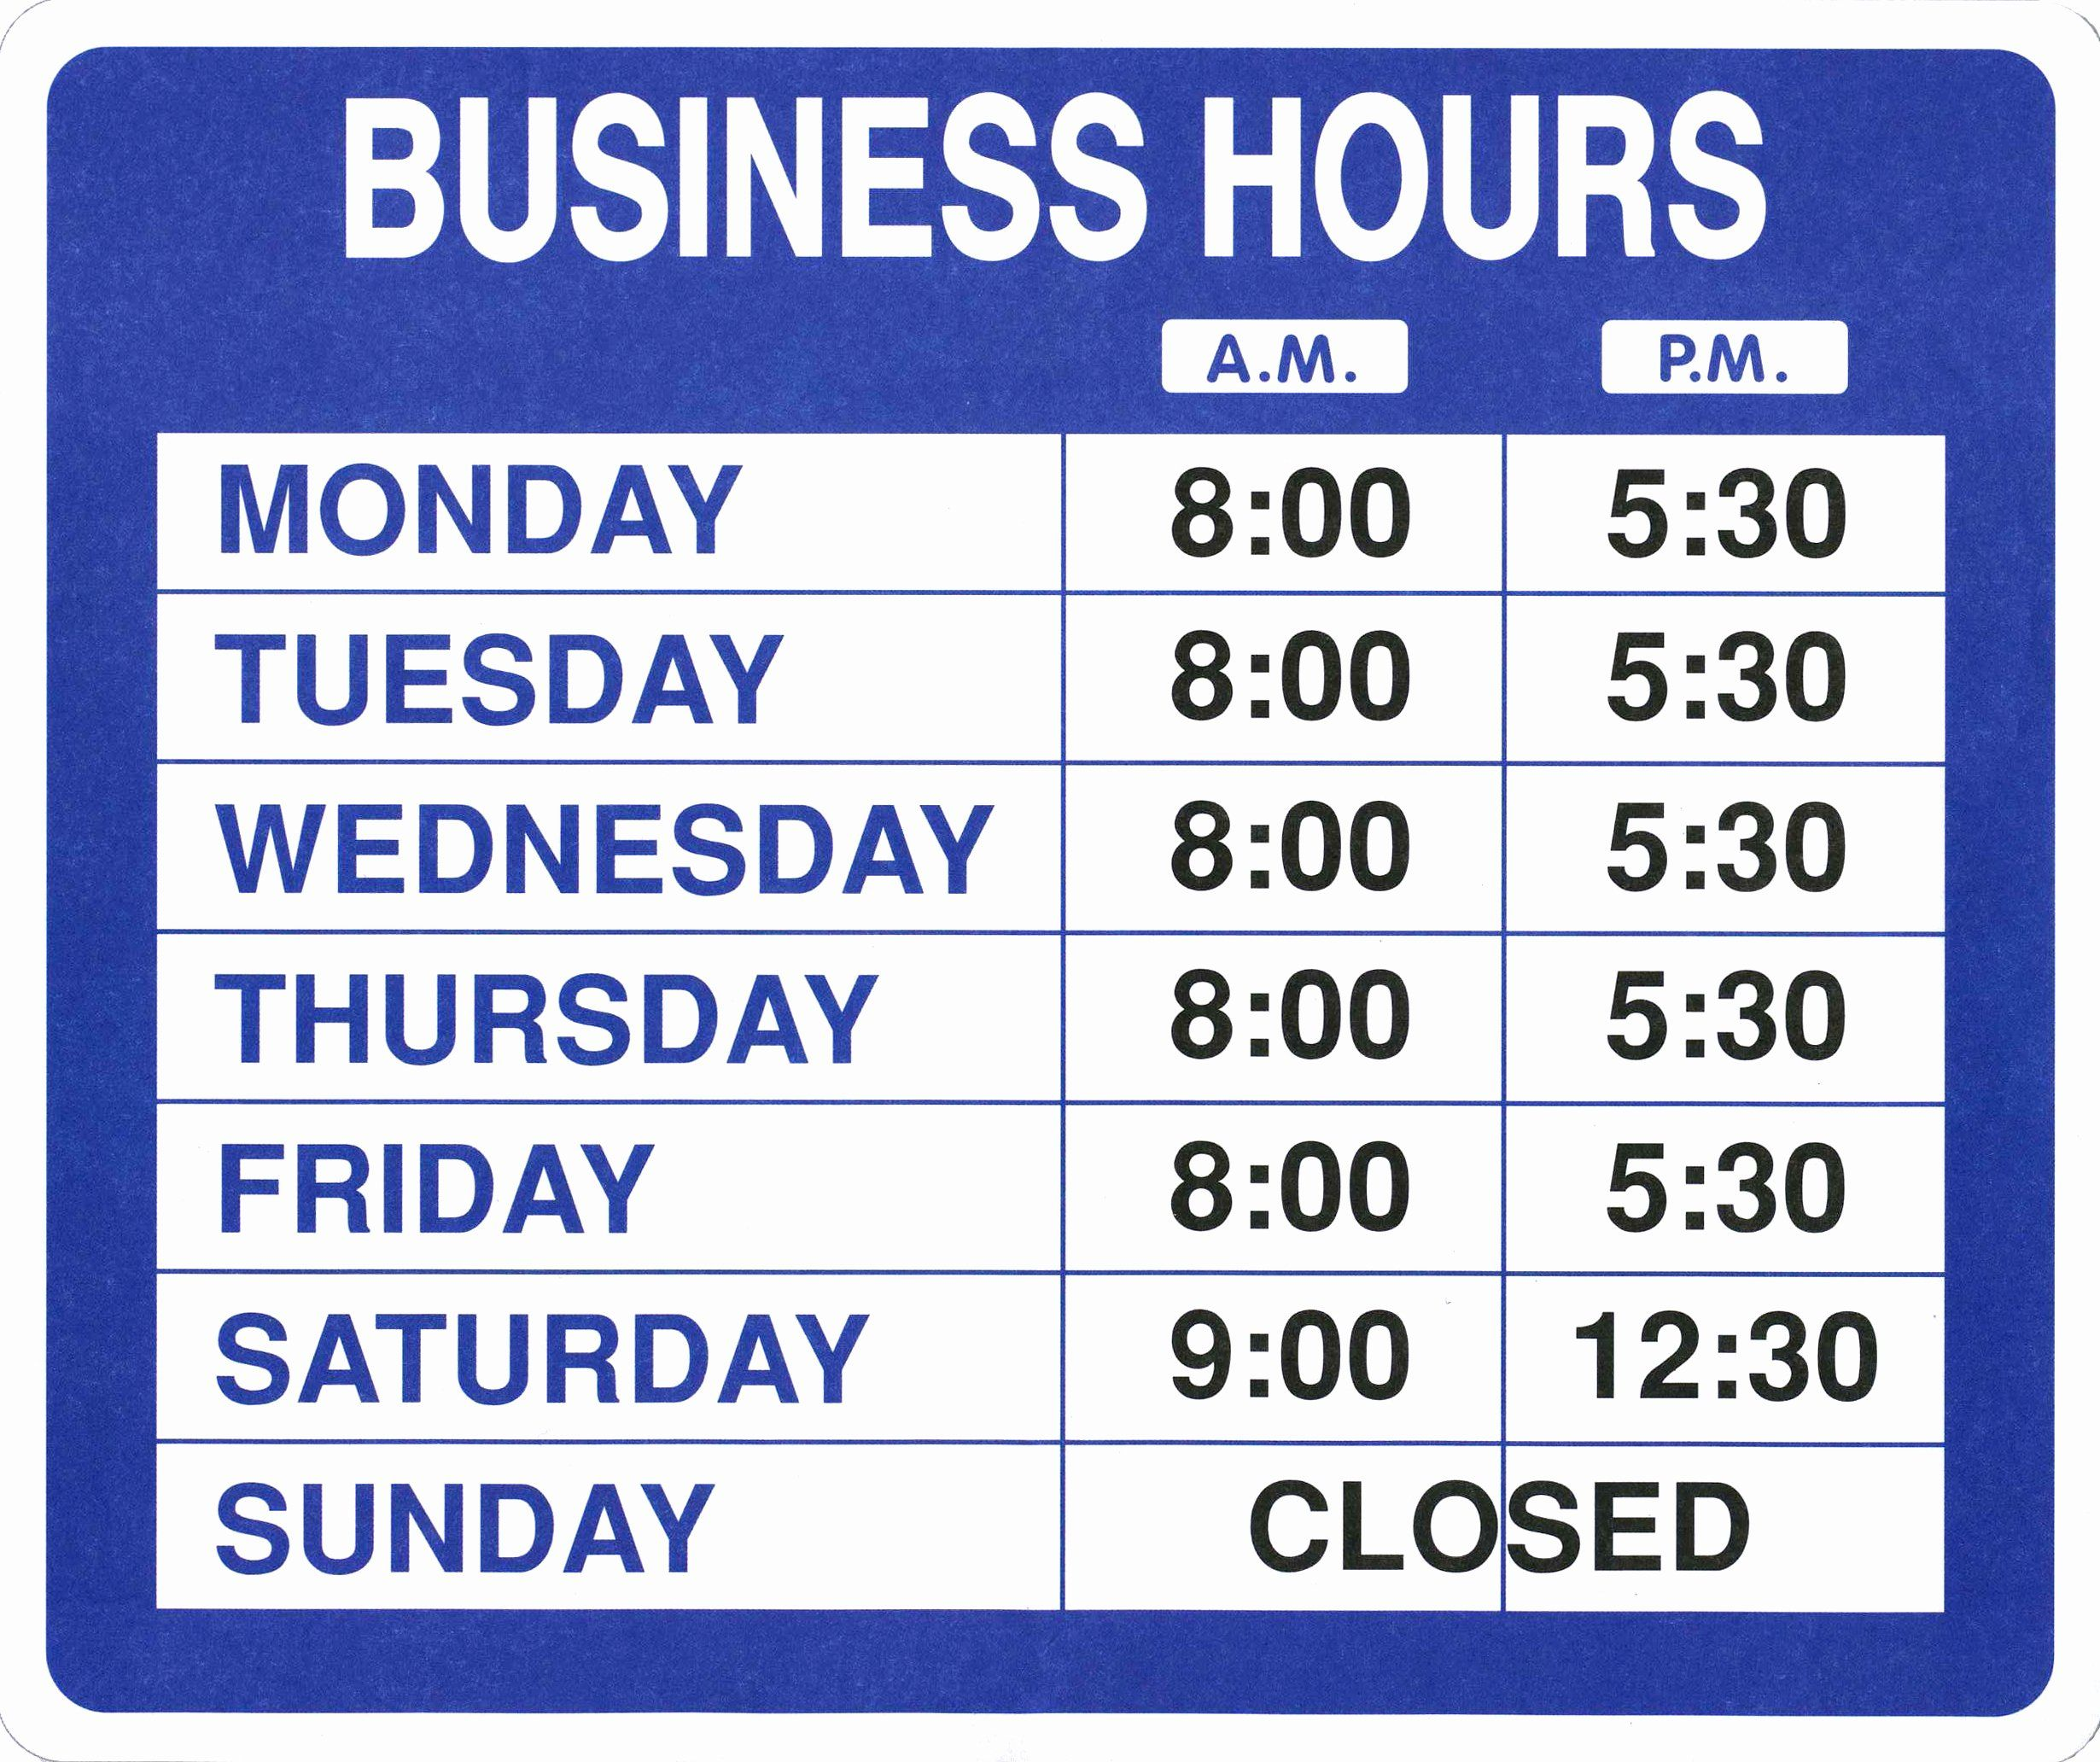 Business Hours Sign Template Free Awesome Garveyproducts Line Shopping For Labelers Taggers Microsoft Office Word Office Word Business Hours Sign Business hours sign template free